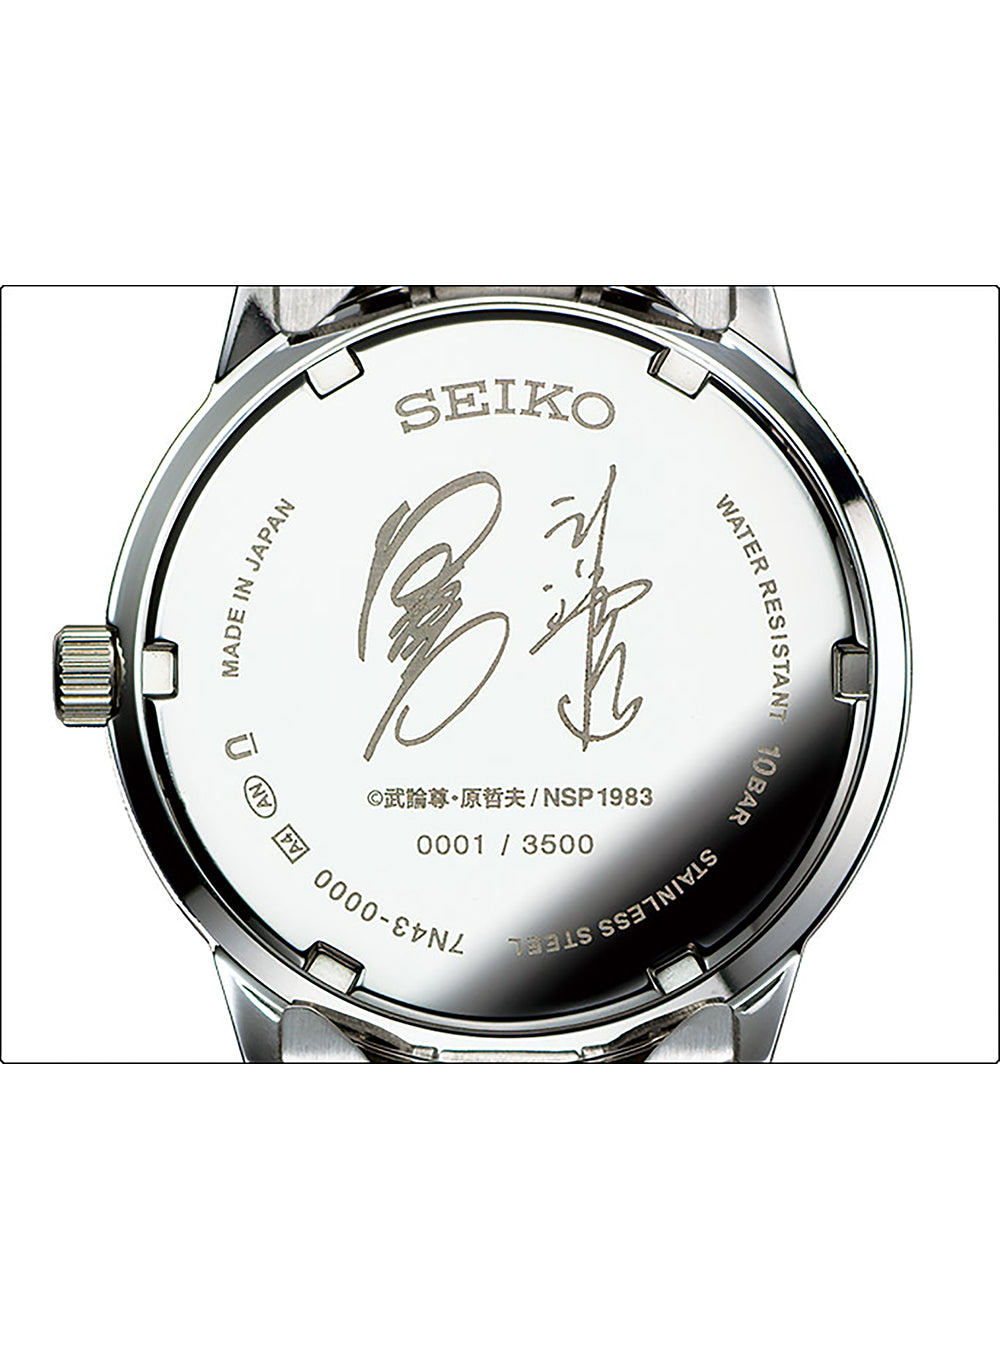 SEIKO×FIST OF THE NORTH STAR 35TH ANNIVERSARY LIMITED EDITION LEATHER BAND MADE IN JAPAN